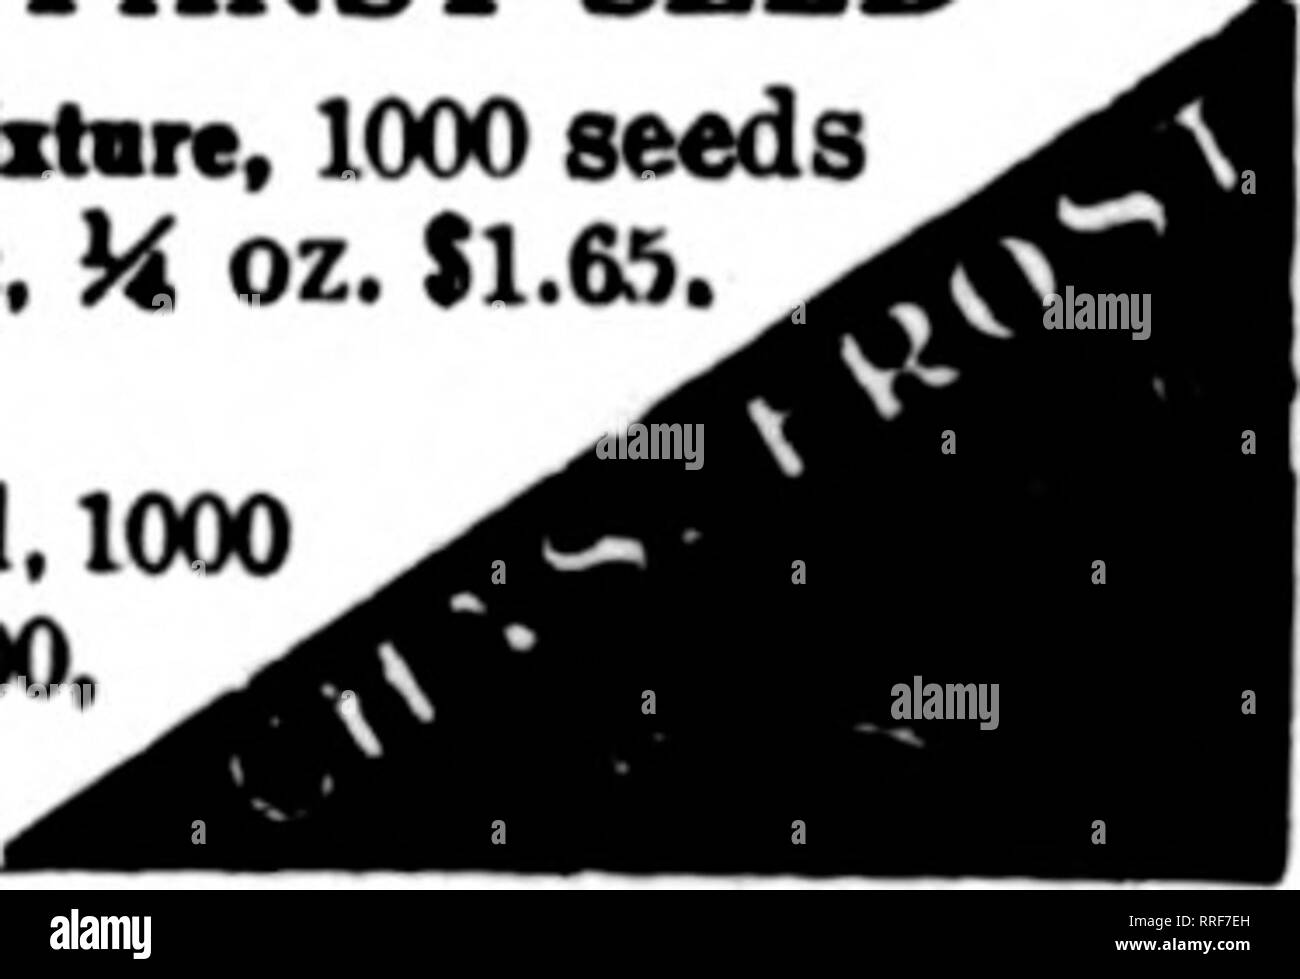 . Florists' review [microform]. Floriculture. Mention The Beylew when yog write. KENILWORTH GIANT PANSY SEED Kcaitwerih Miztsrc, 1000 seeds 85c, Is oz. 90c, H oz. $1.6S. 1 oz. $6.00. ADCeion, separate or mixed, 1000 seeds 30c, any 4 pkts $1.00, H oz. $1.30. 1 oz. $5.00. THE J. C. Robinson Seed Co. WATERLOO, NEB. ROCKY FORD, COLO. C!ontract growers of Cucumber, Cantaloupe. Watermelon,Sauash and Pumpkin Seed, Sugar, Flint and Field Seed Com. ICeatloa Tbe Berlew when yon write. THE KINBERLIN SEED CO. Seed c'r^era StkXl JOSC, C&l. GROWERS OP ONION, LETTUCE, RADISH, ETC. Corresonnrlpnce Solicit - Stock Image